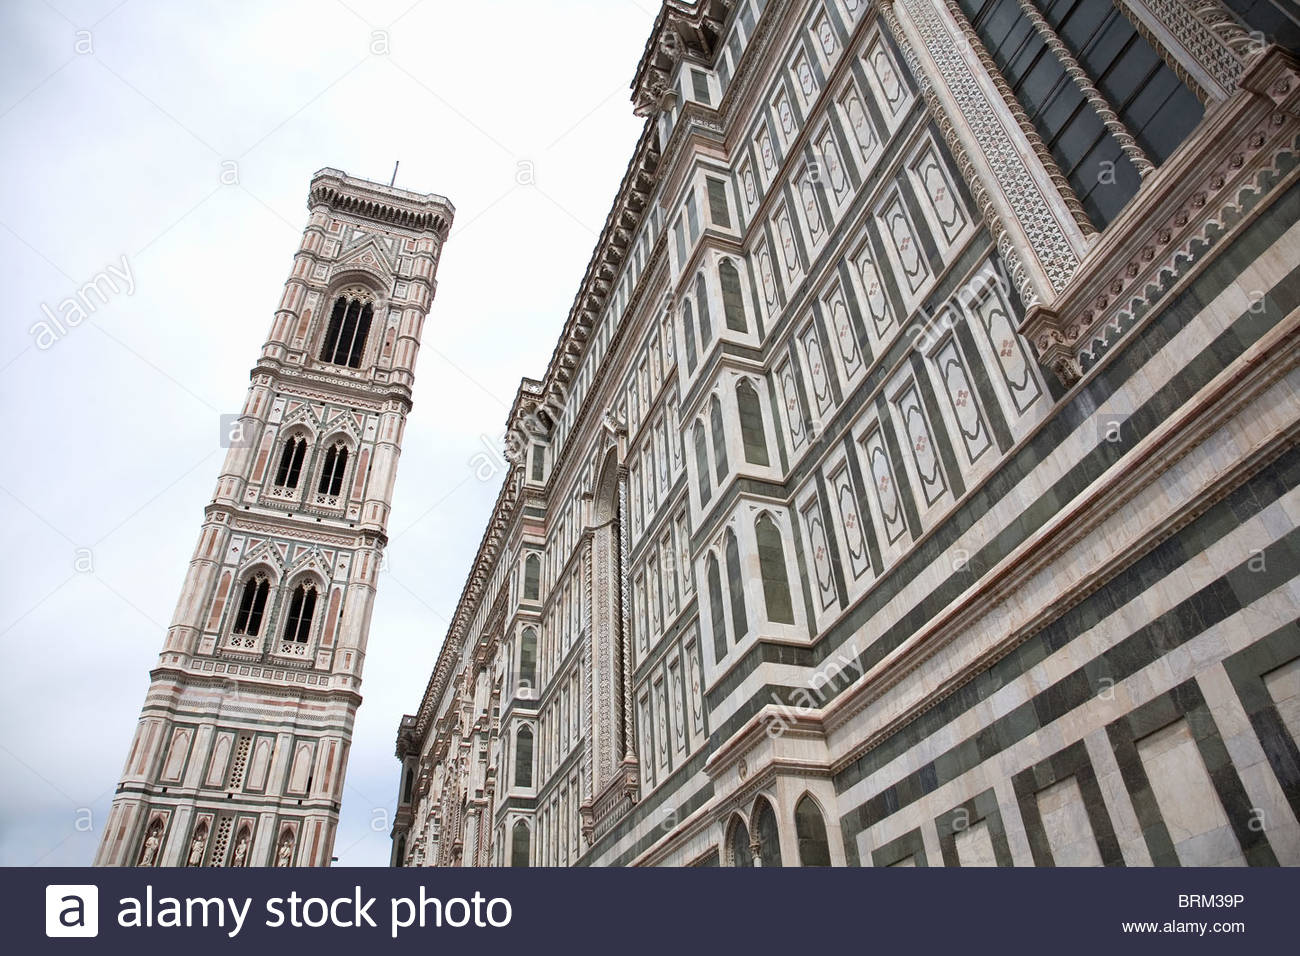 The Duomo, Florence, Italy - Stock Image